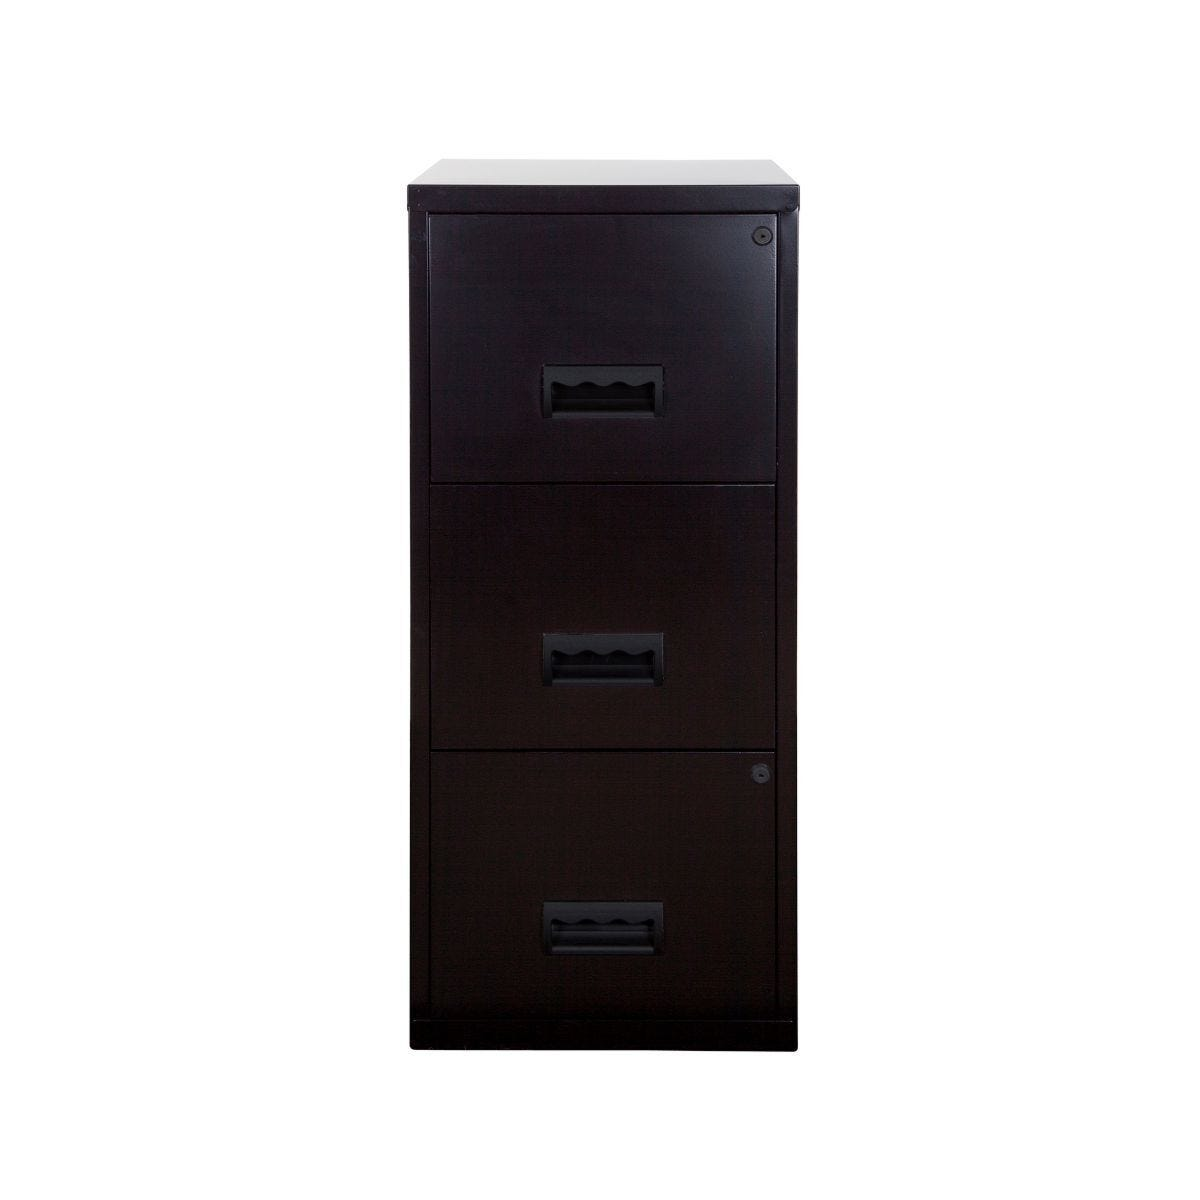 Pierre Henry A4 3 Drawer Maxi Filing Cabinet Black